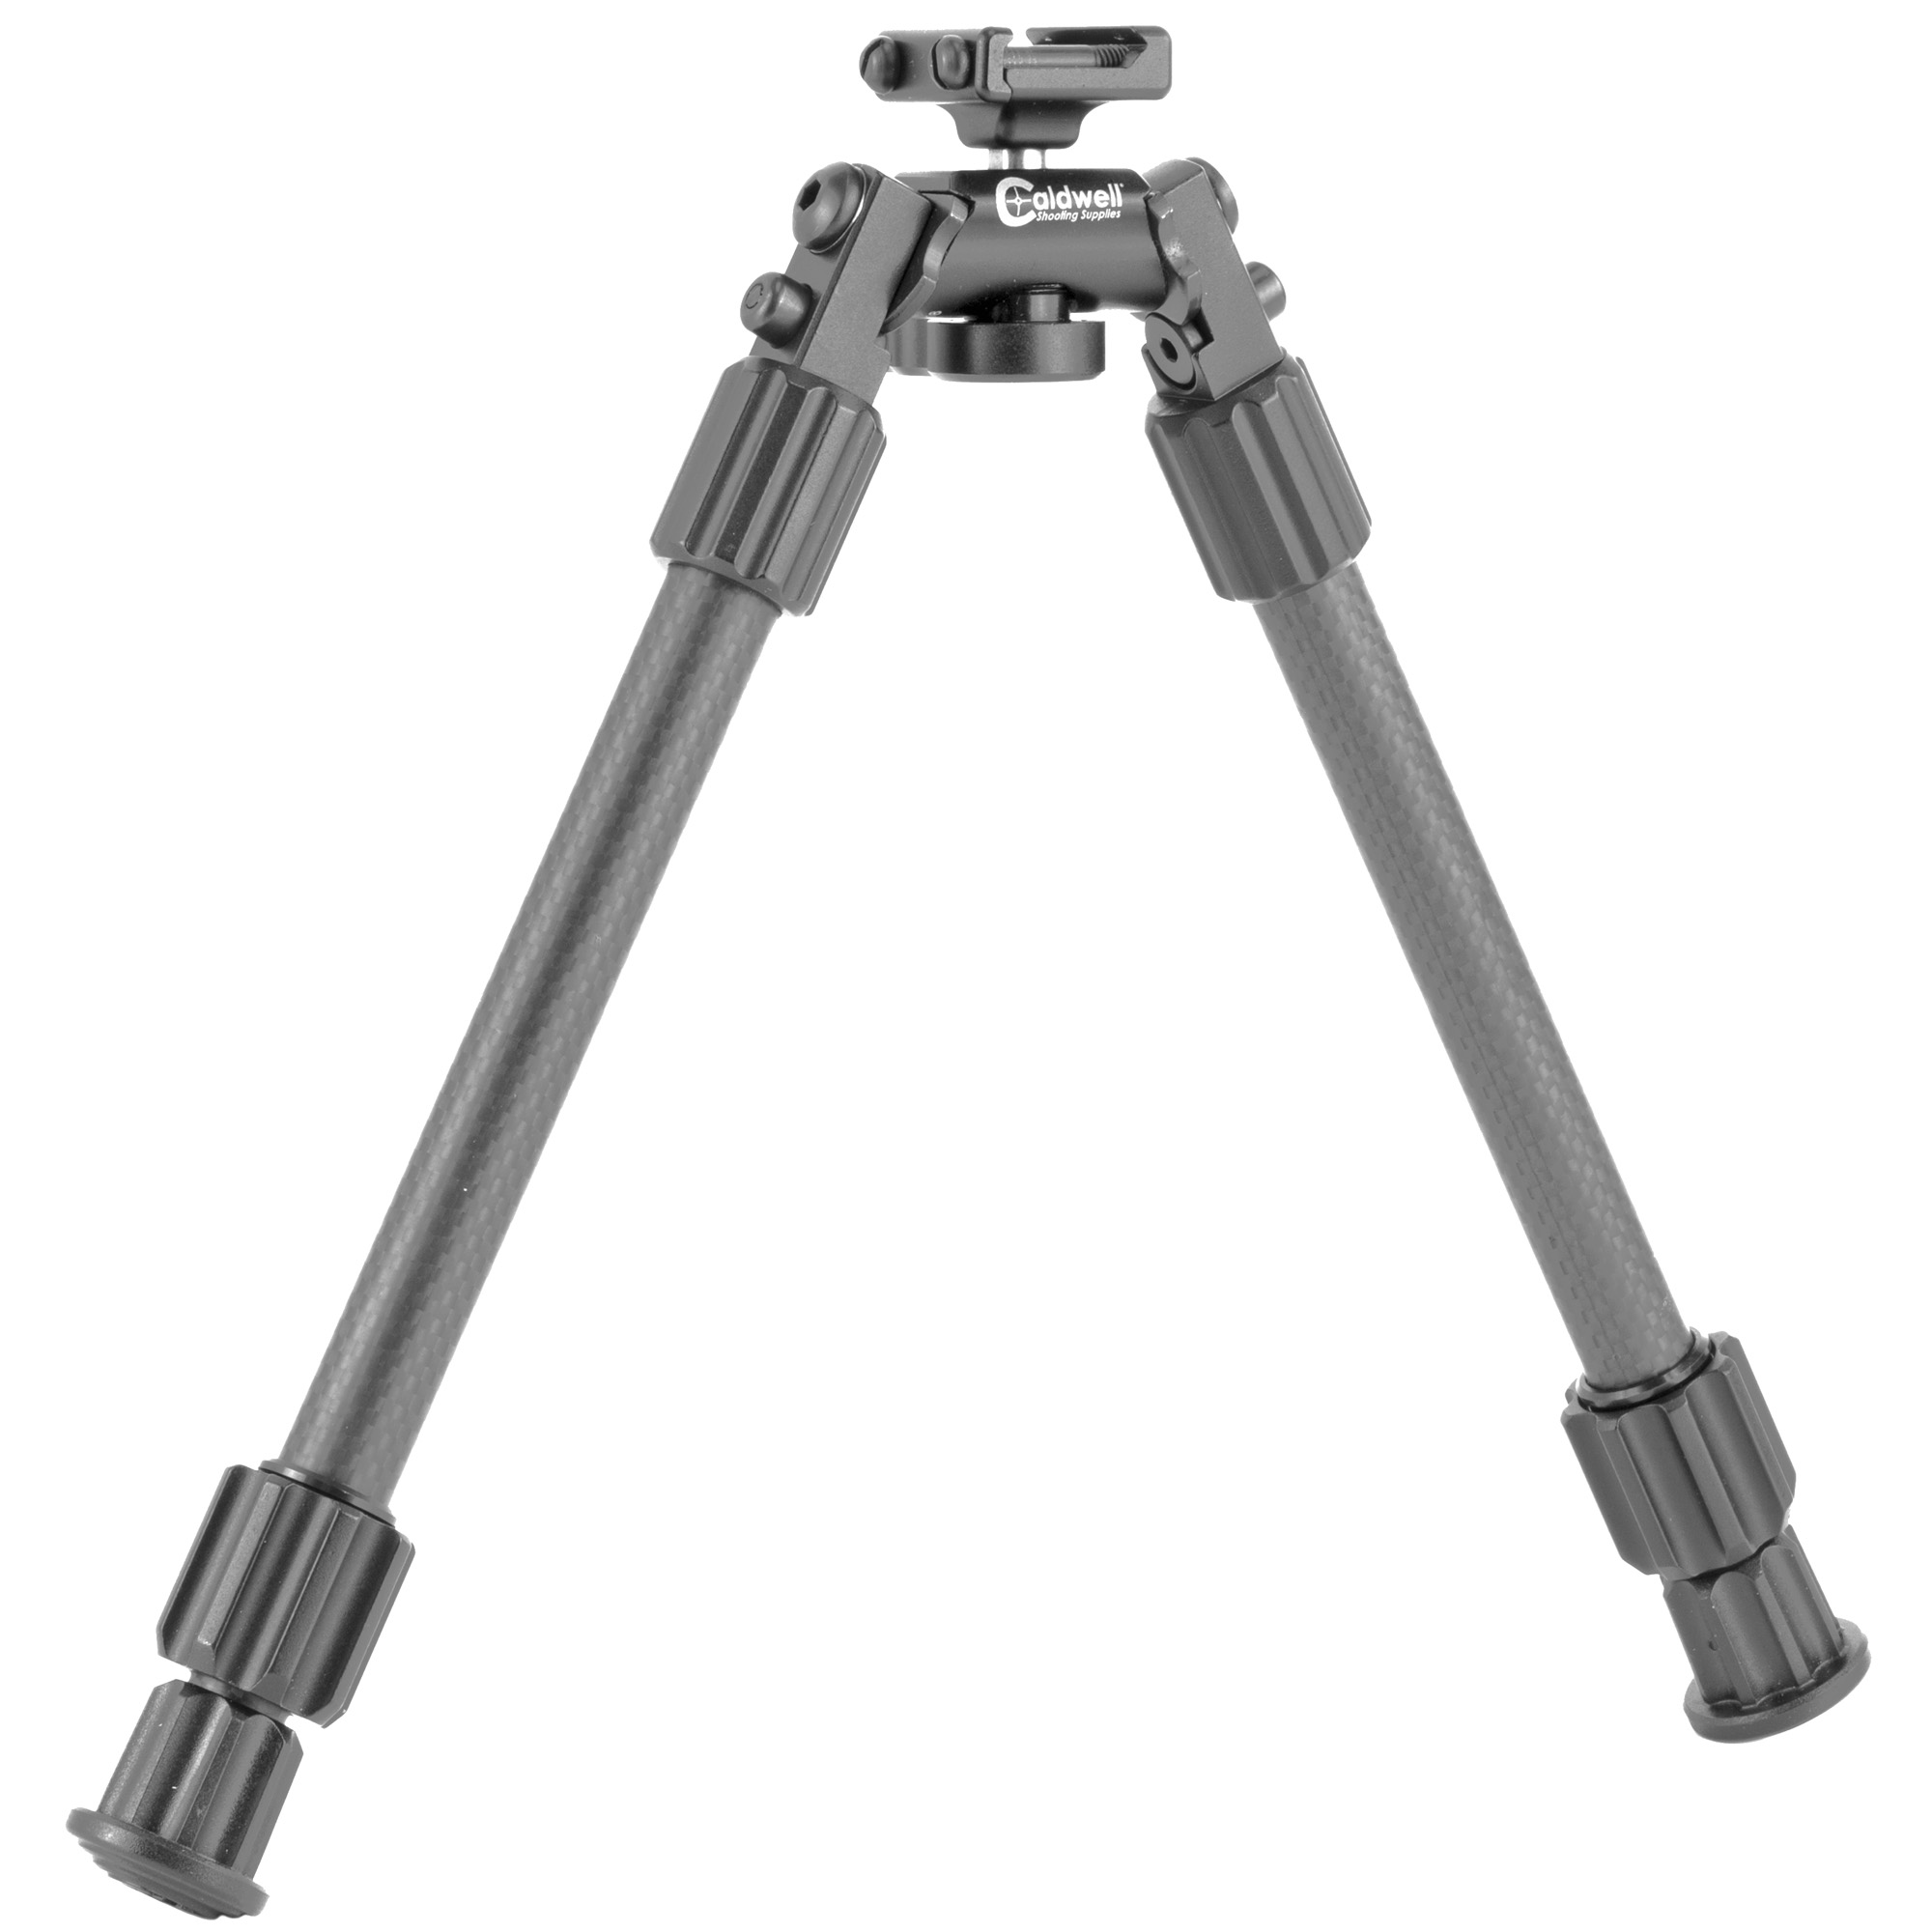 """Caldwell's Premium Picatinny Rail 9""""-13"""" Bipod let you have a bipod on your AR without all the extra weight of adaptors and to achieve maximum accuracy. Designed with the shooter in mind"""" this tactical rifle bipod features quick-deployment carbon fiber legs and soft rubber feet for enhanced stability. Dial-in with ease using the twist-lock technology"""" 180 degrees of leg angle adjustment and the swivel tension lever."""